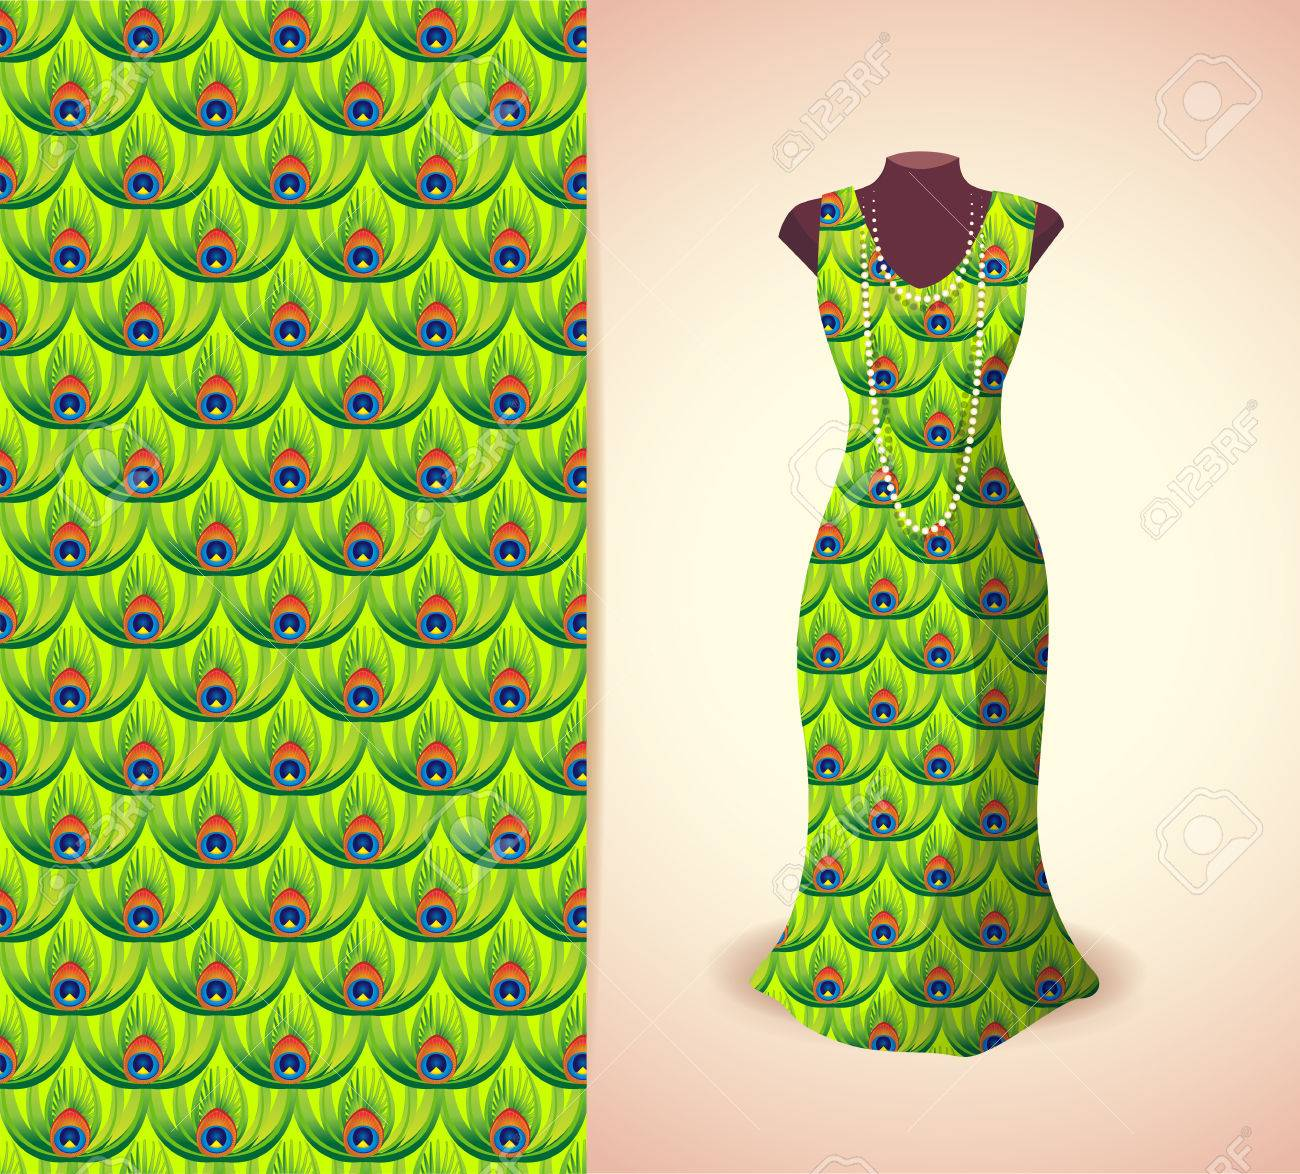 Vector Fashion Illustration Women S Dress On A Dummy Seamless Royalty Free Cliparts Vectors And Stock Illustration Image 59865983